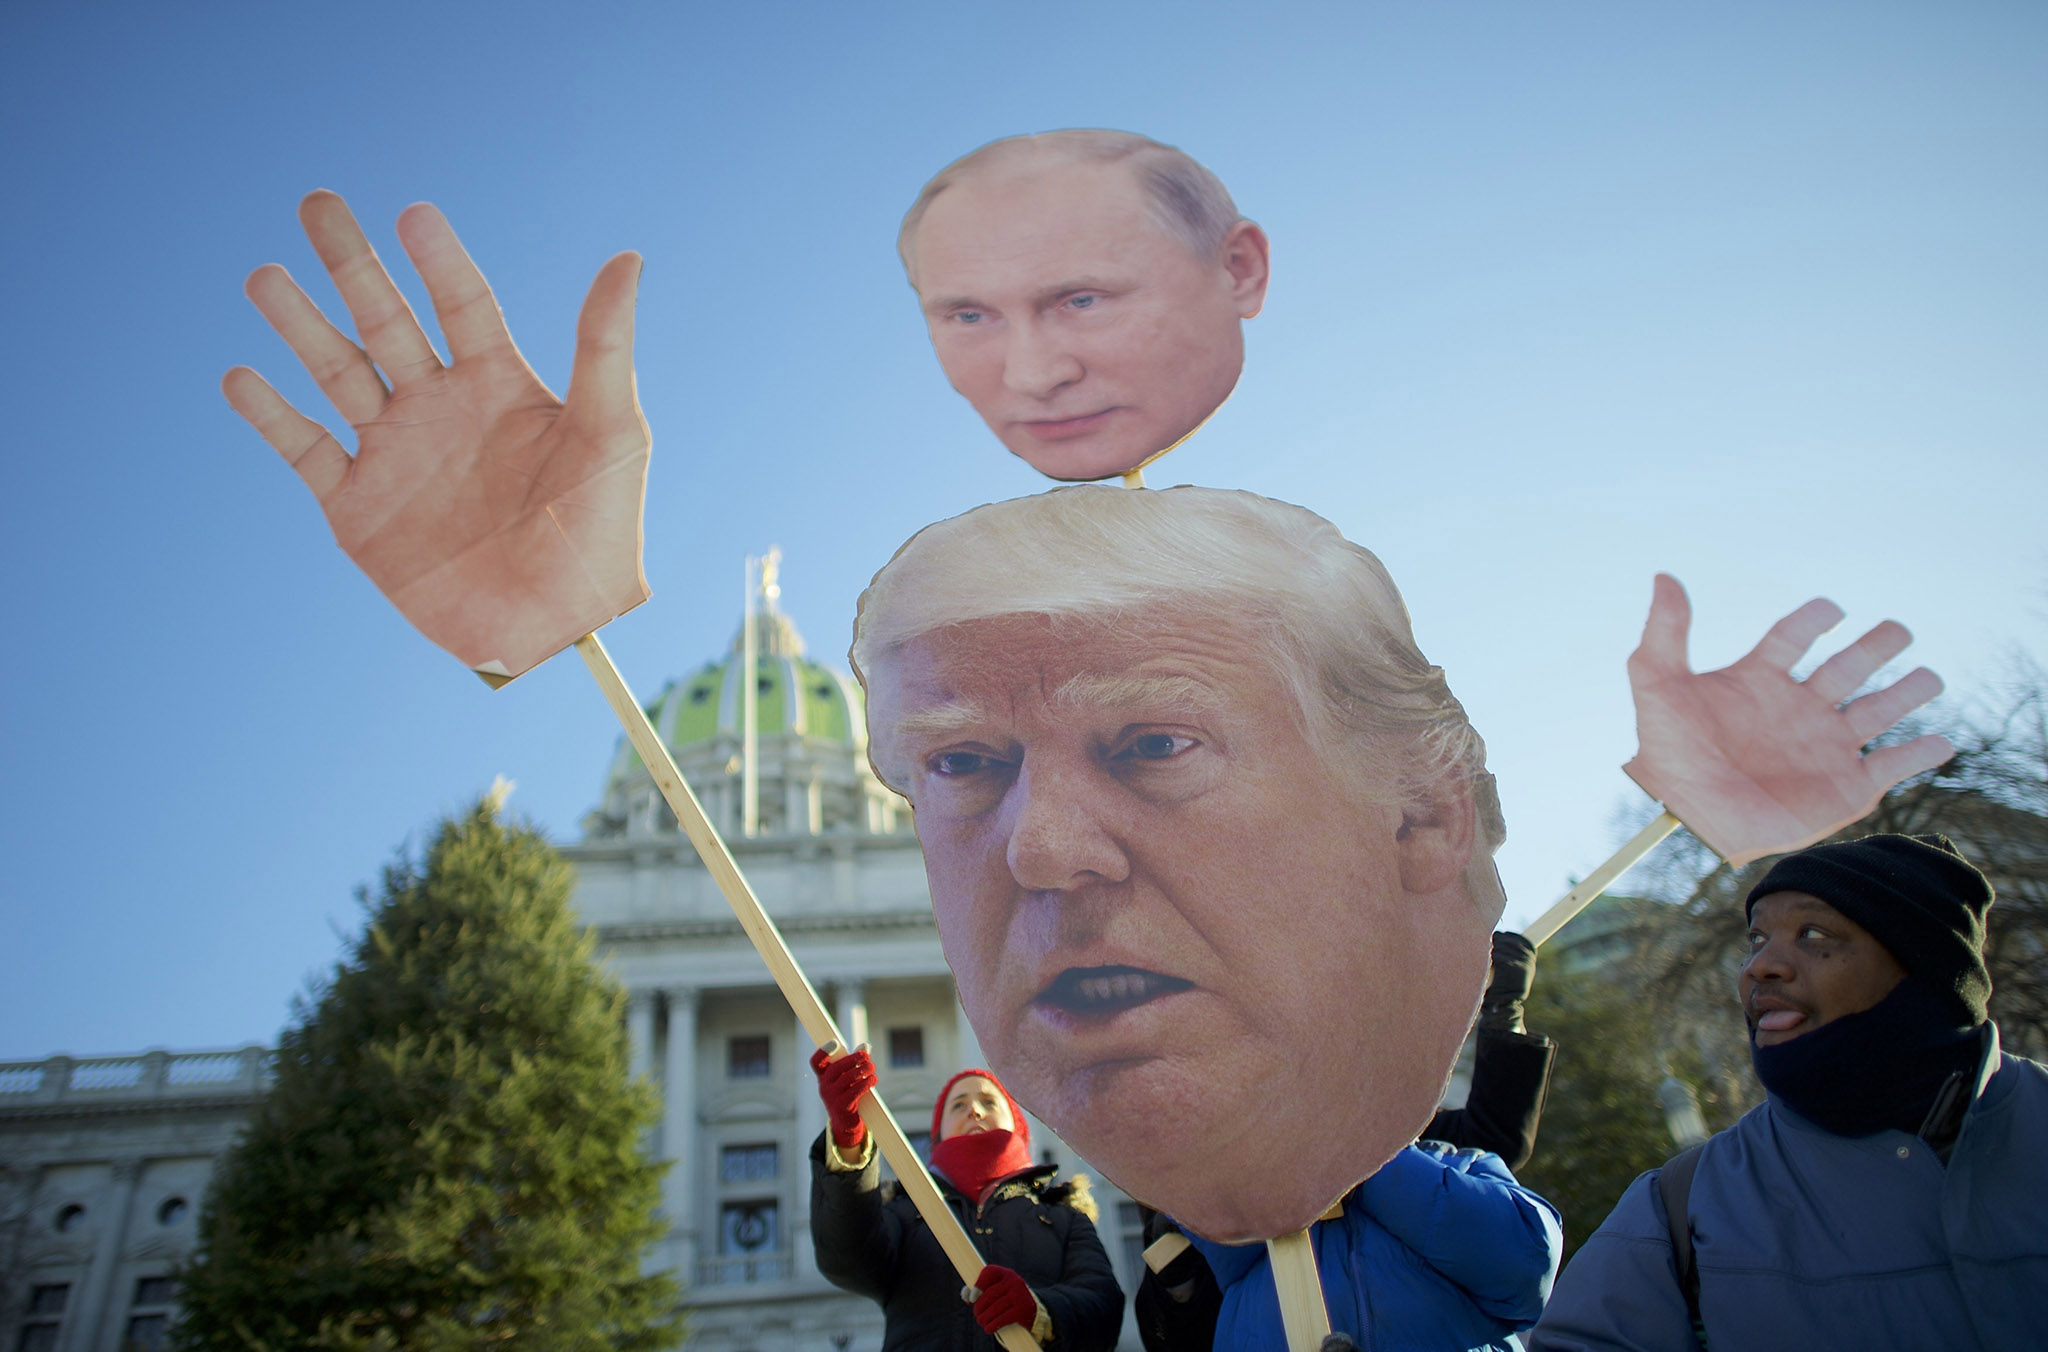 Donald Trump protestors demonstrate outside the Pennsylvania Capitol Building before electors arrive to cast their votes from the election at December 19, 2016 in Harrisburg, Pennsylvania.  Electors from all 50 states cast votes today in their respective state capitols.  Donald J. Trump won Pennsylvania by less than 1%, the first Republican to carry the state since George H.W. Bush 1992.  (Photo by Mark Makela/Getty Images)